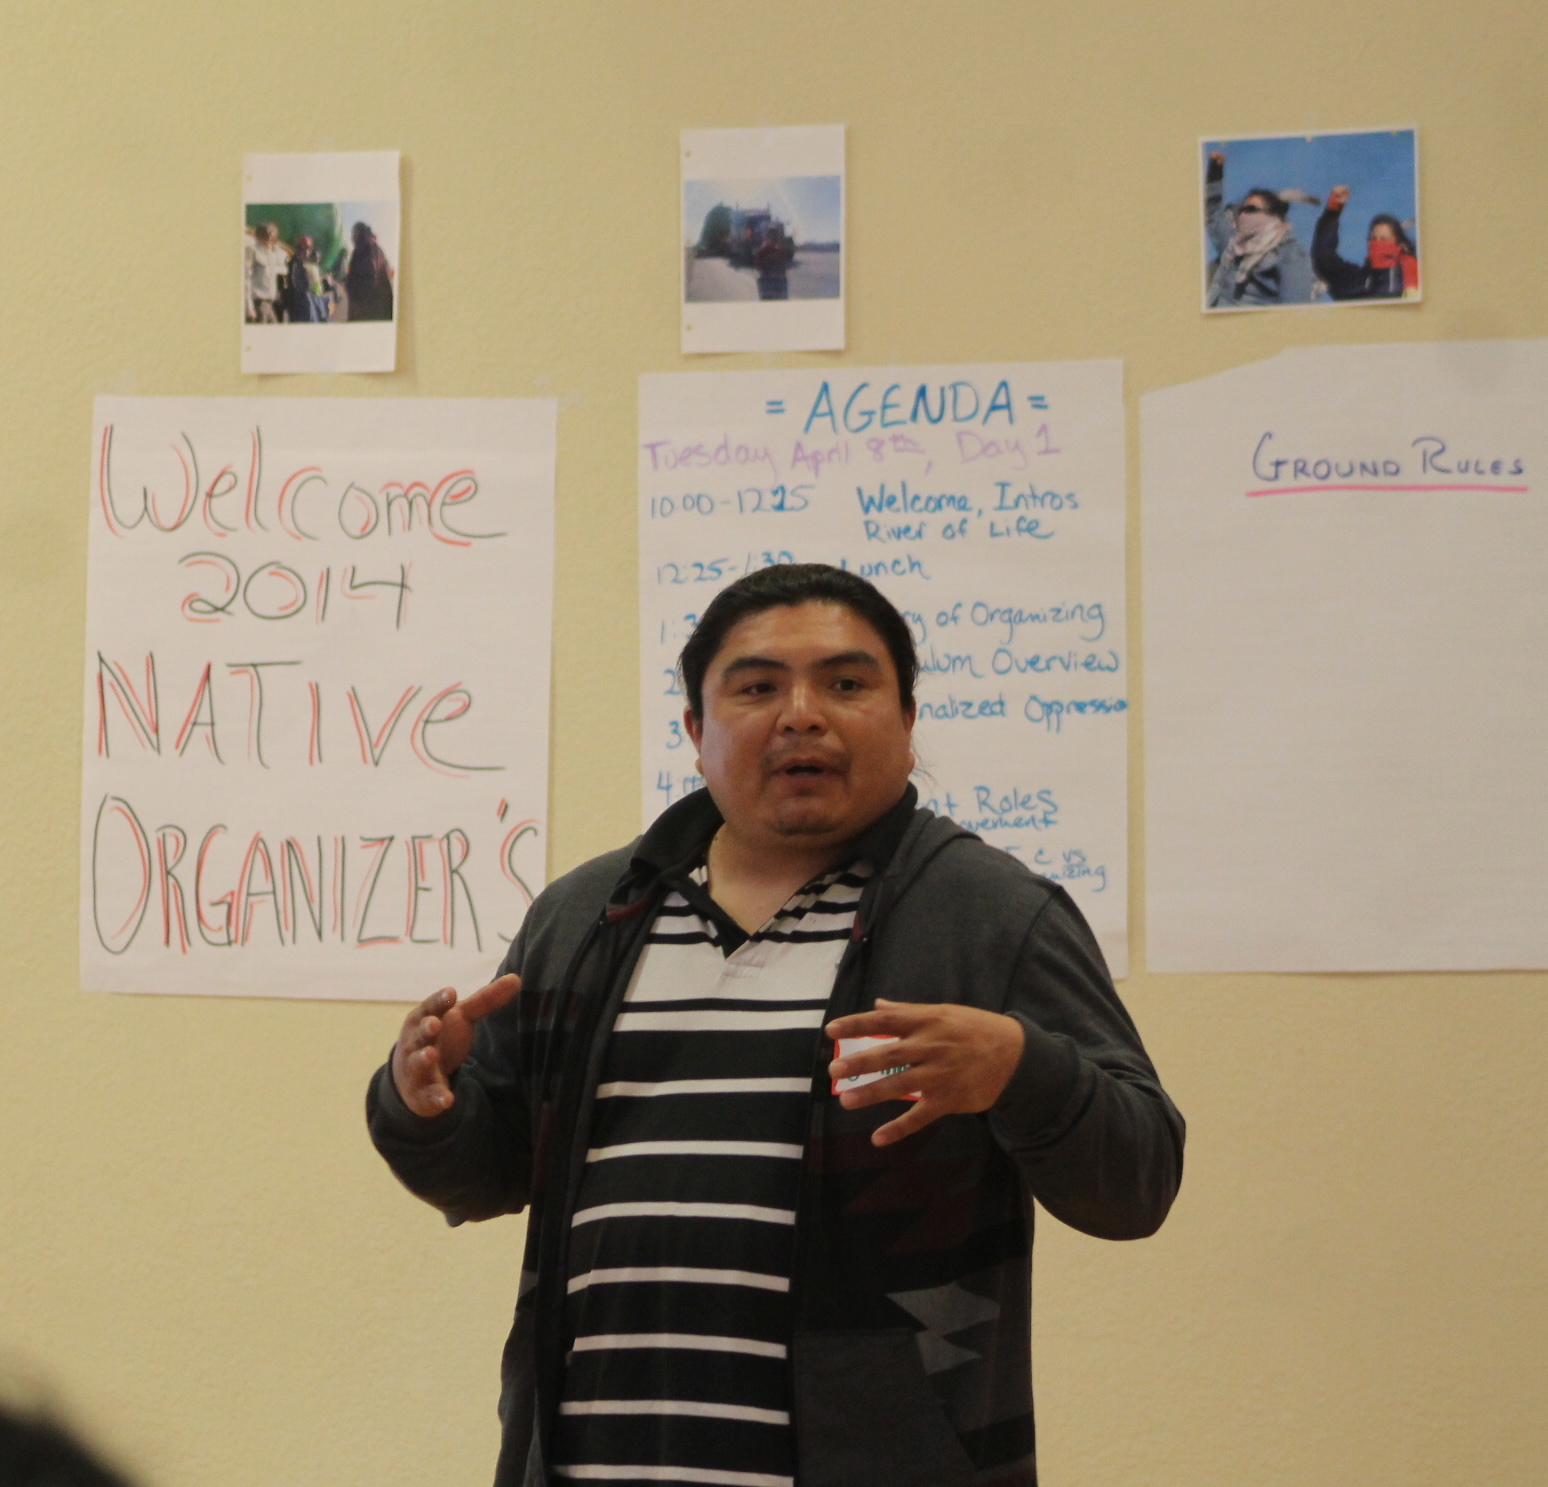 Native Organizer Training 2014